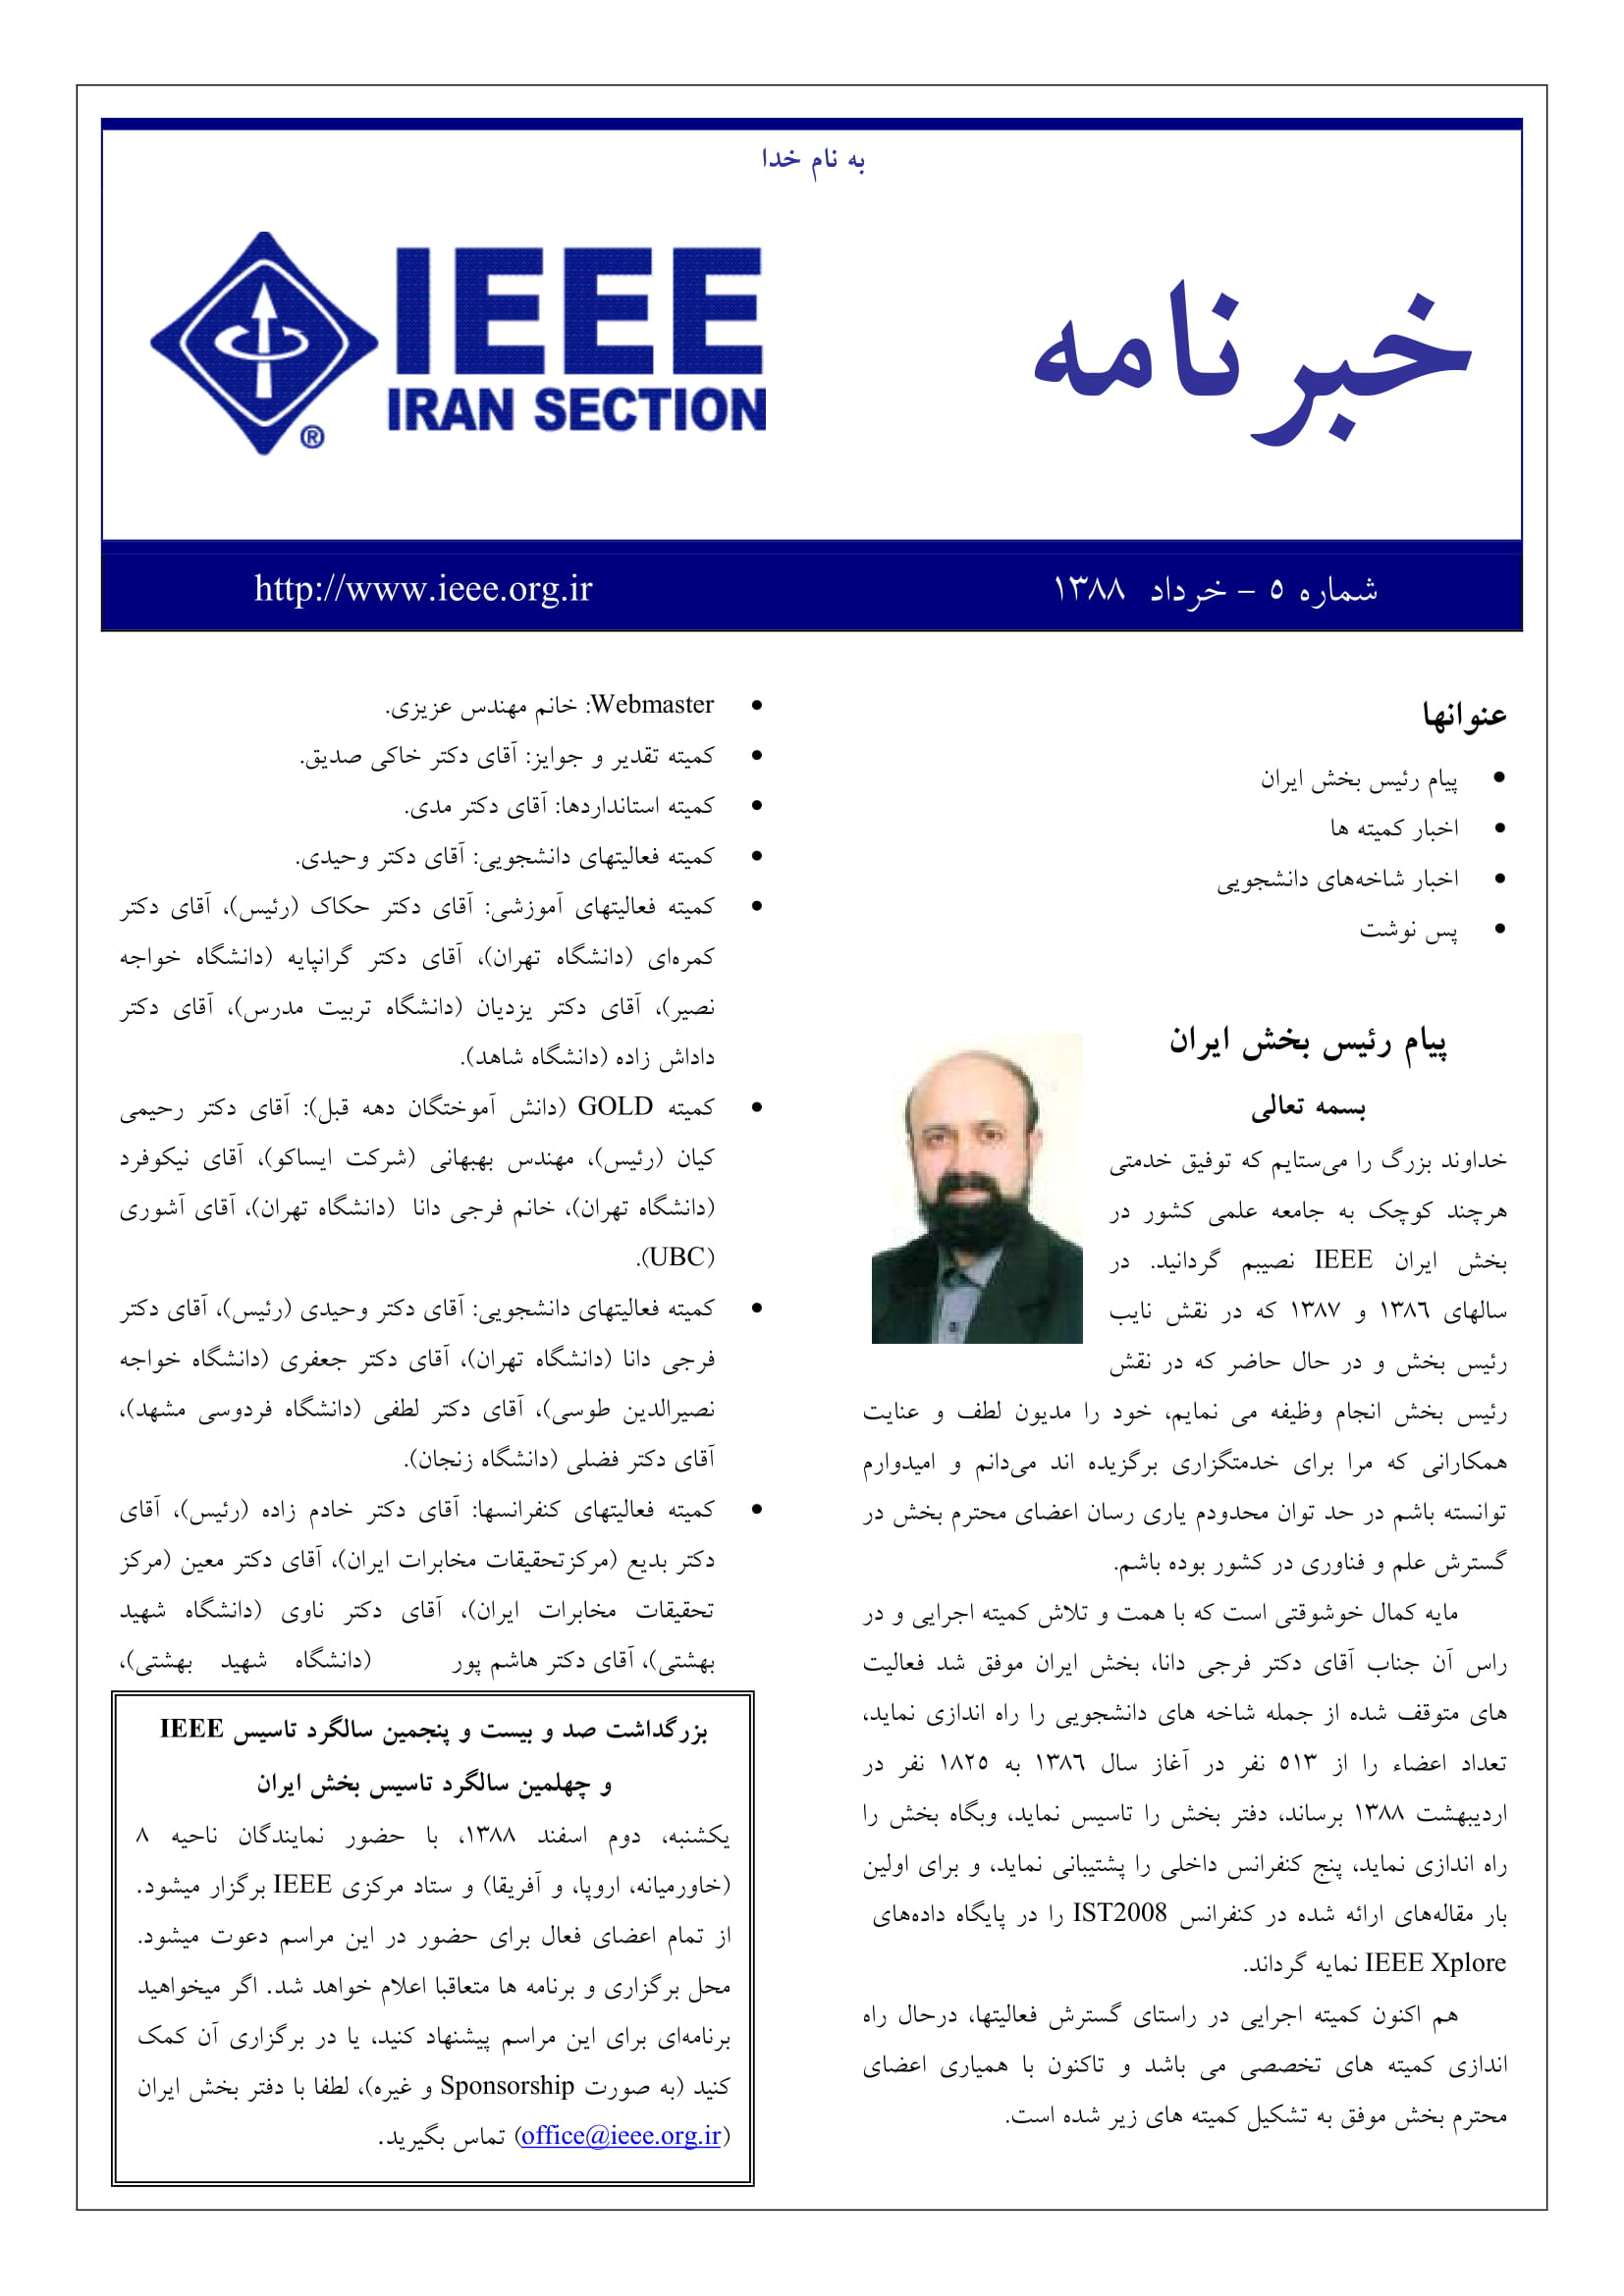 IEEE-Iran-Section_Newsletter_Khordad_1388_No.5-1